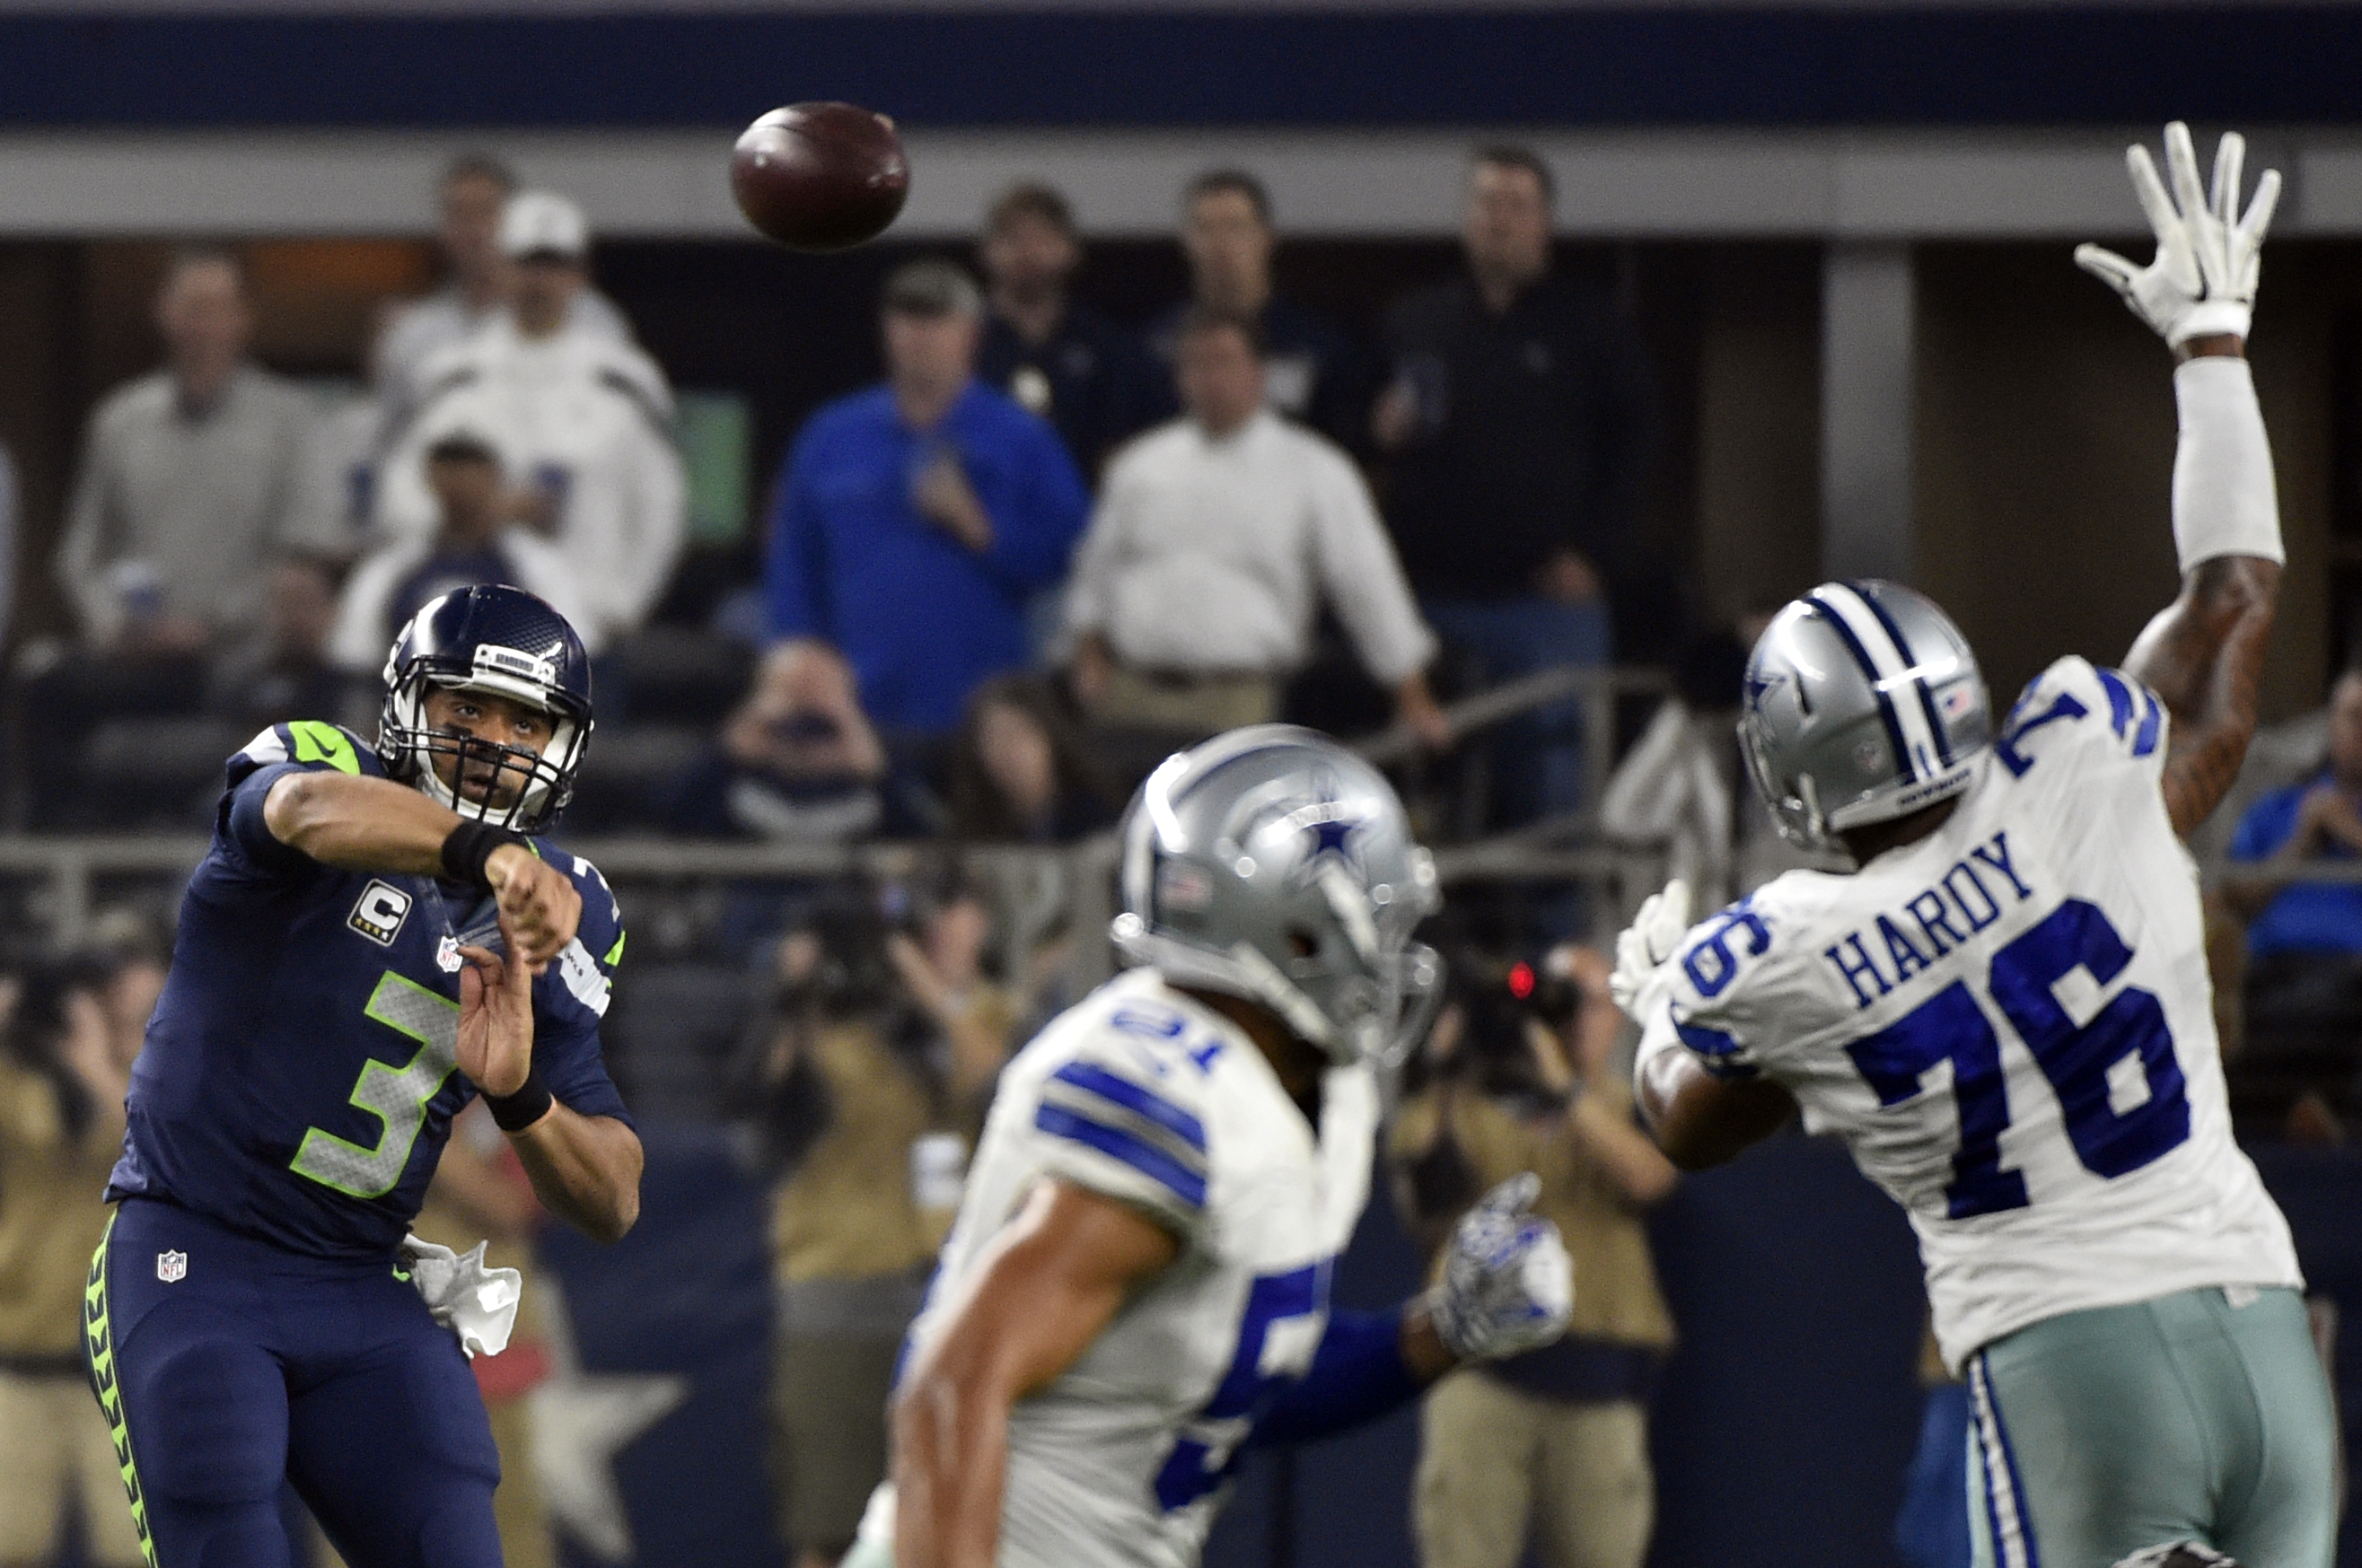 Seattle Seahawks' Russell Wilson (3) passes the ball past Dallas Cowboys' Greg Hardy (76) in the second half of an NFL football game Sunday, Nov. 1, 2015, in Arlington, Texas. (AP Photo/Michael Ainsworth)